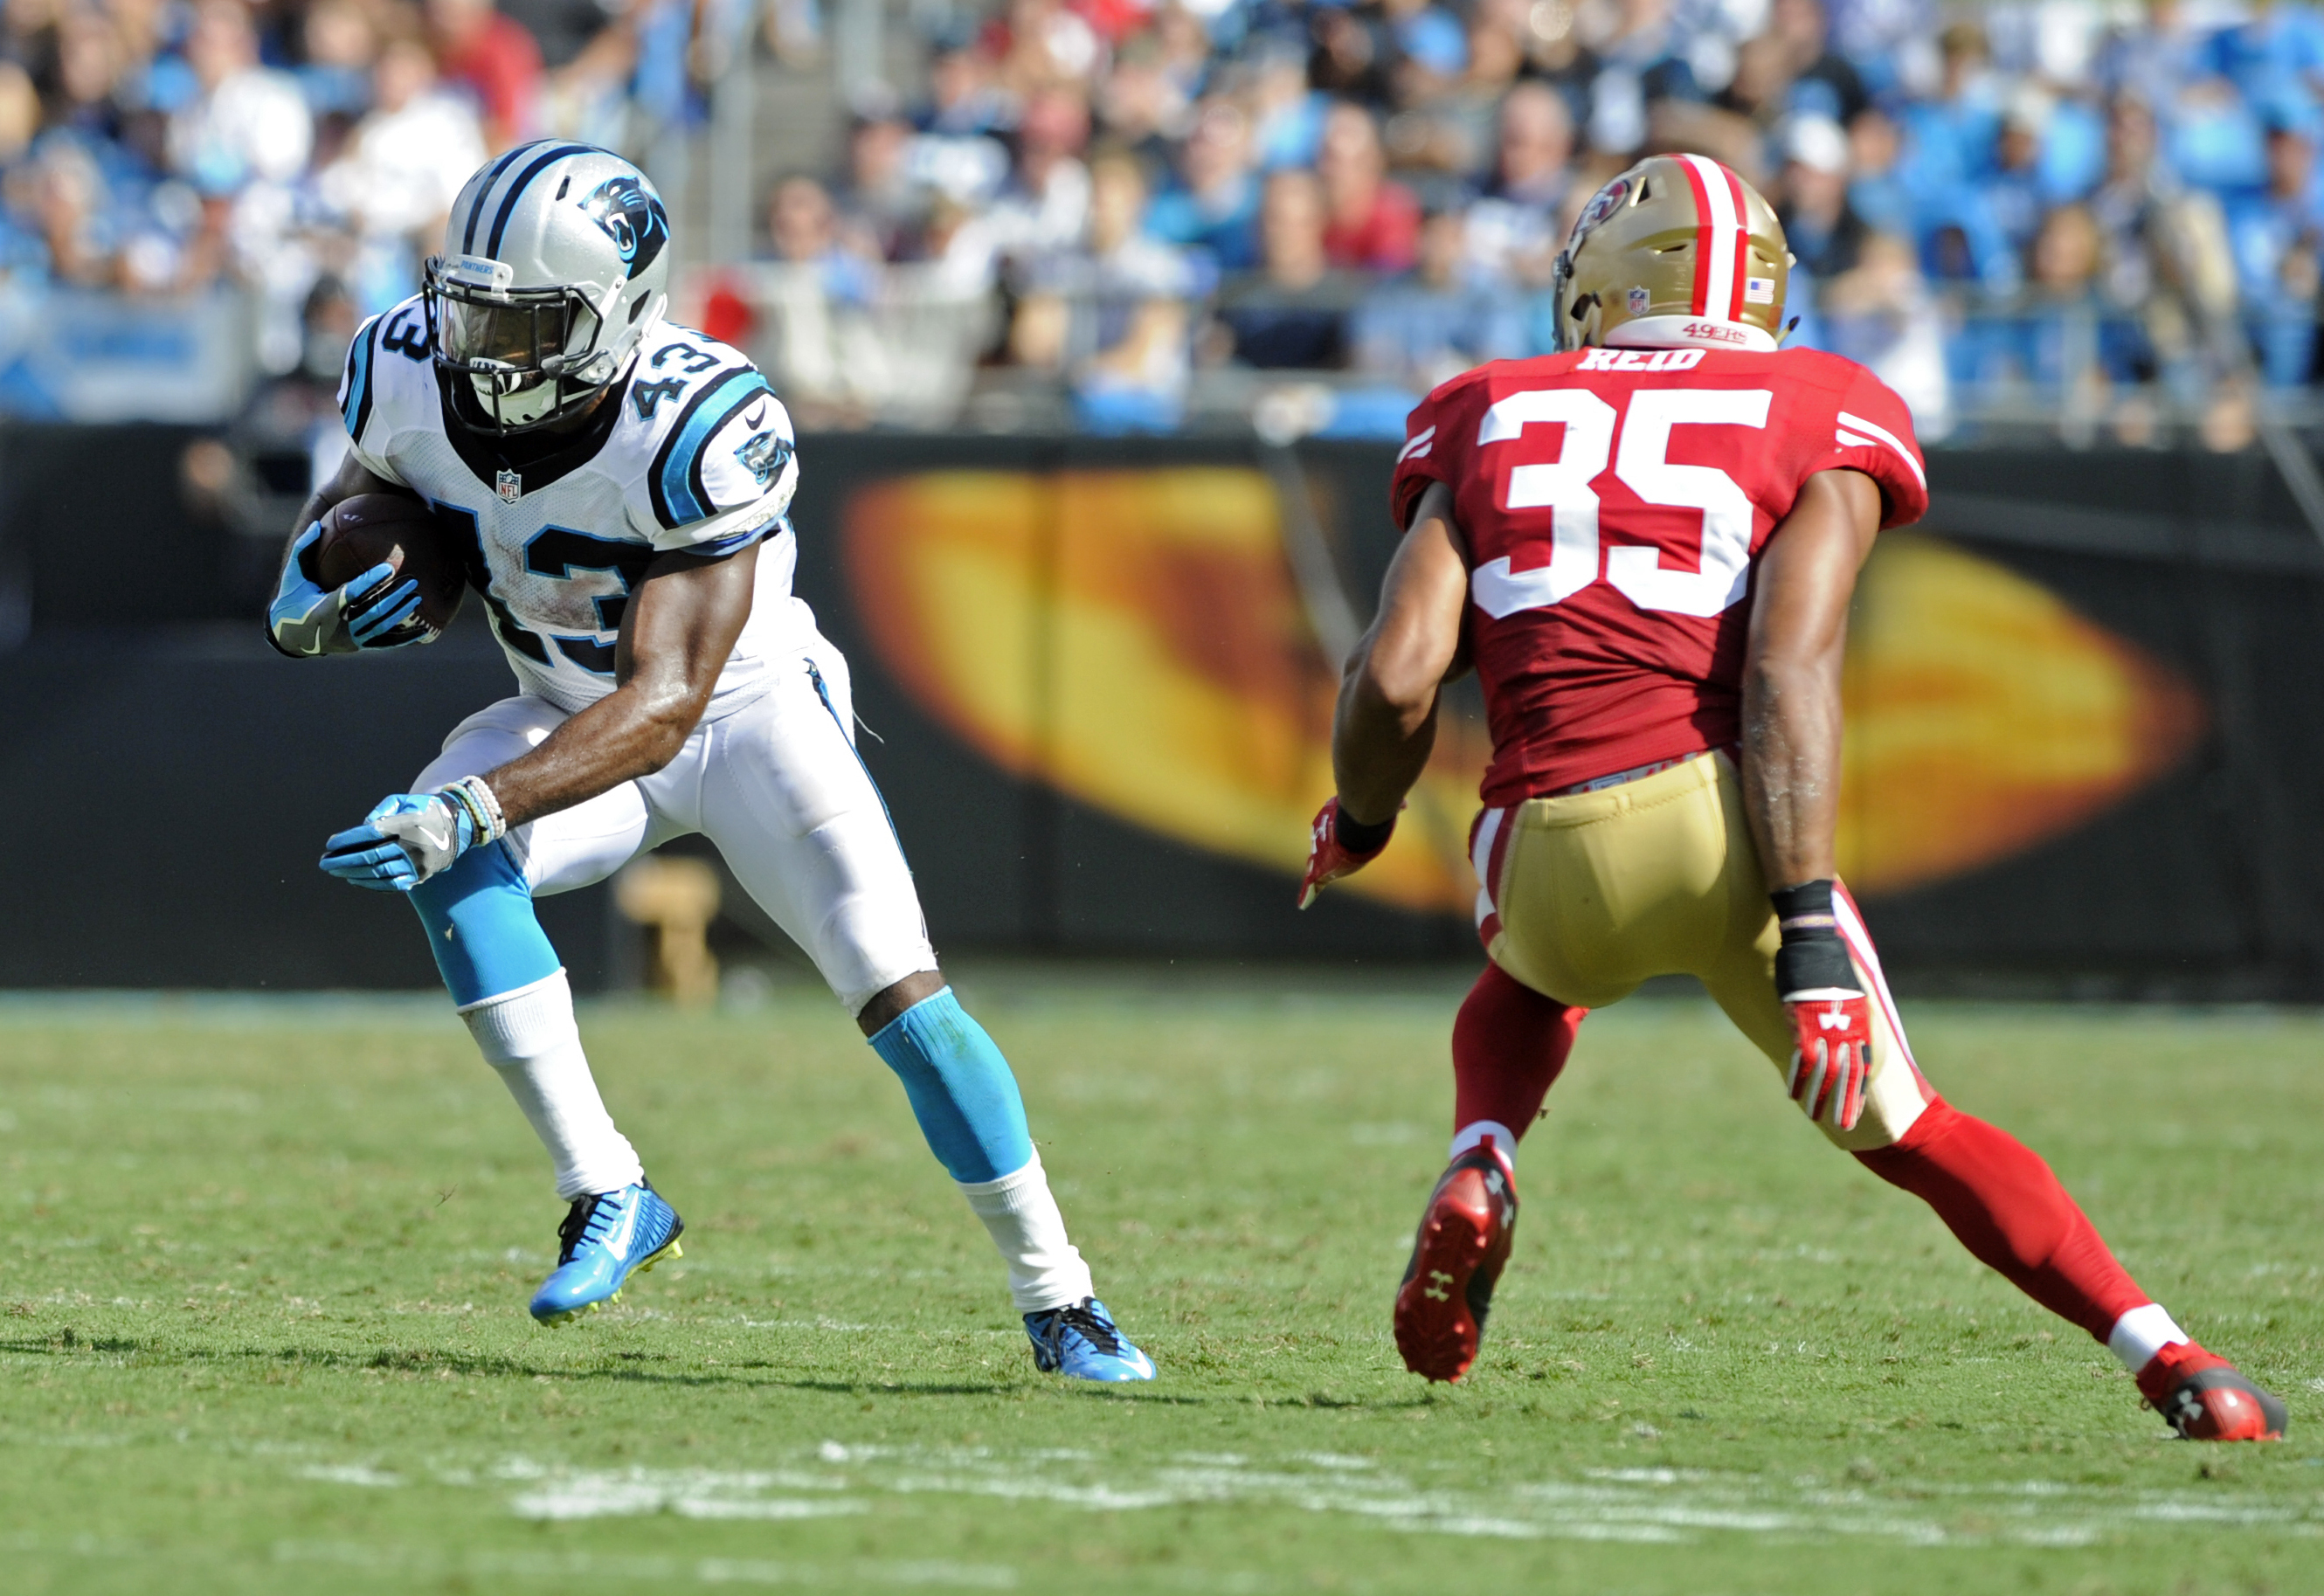 Carolina Panthers' Fozzy Whittaker (43) runs past San Francisco 49ers' Eric Reid (35) in the second half of an NFL football game in Charlotte, N.C., Sunday, Sept. 18, 2016. (AP Photo/Mike McCarn)